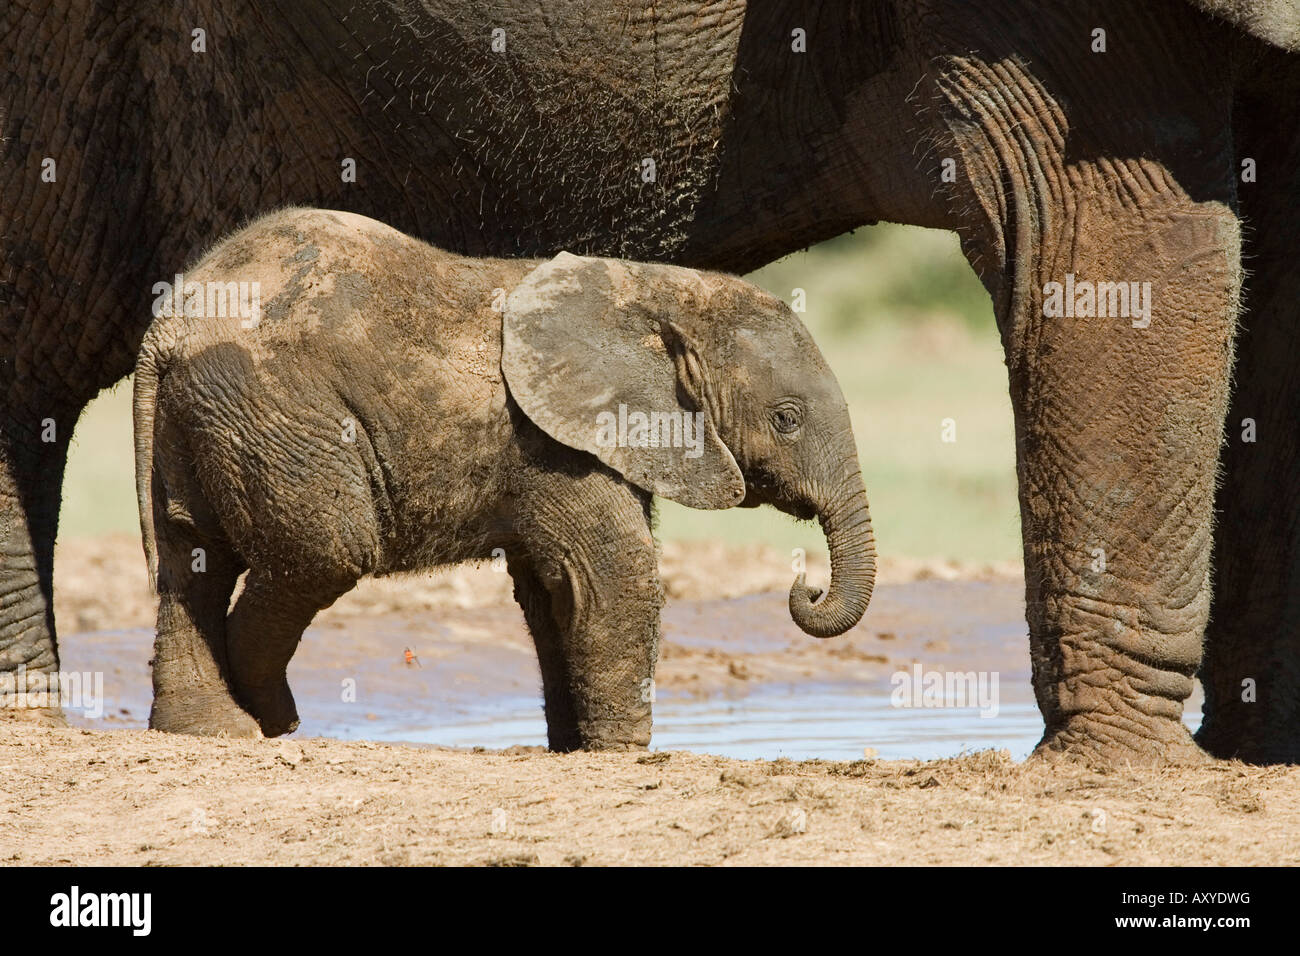 Baby African elephant (Loxodonta africana) standing by its mother, Addo Elephant National Park, South Africa, Africa Stock Photo